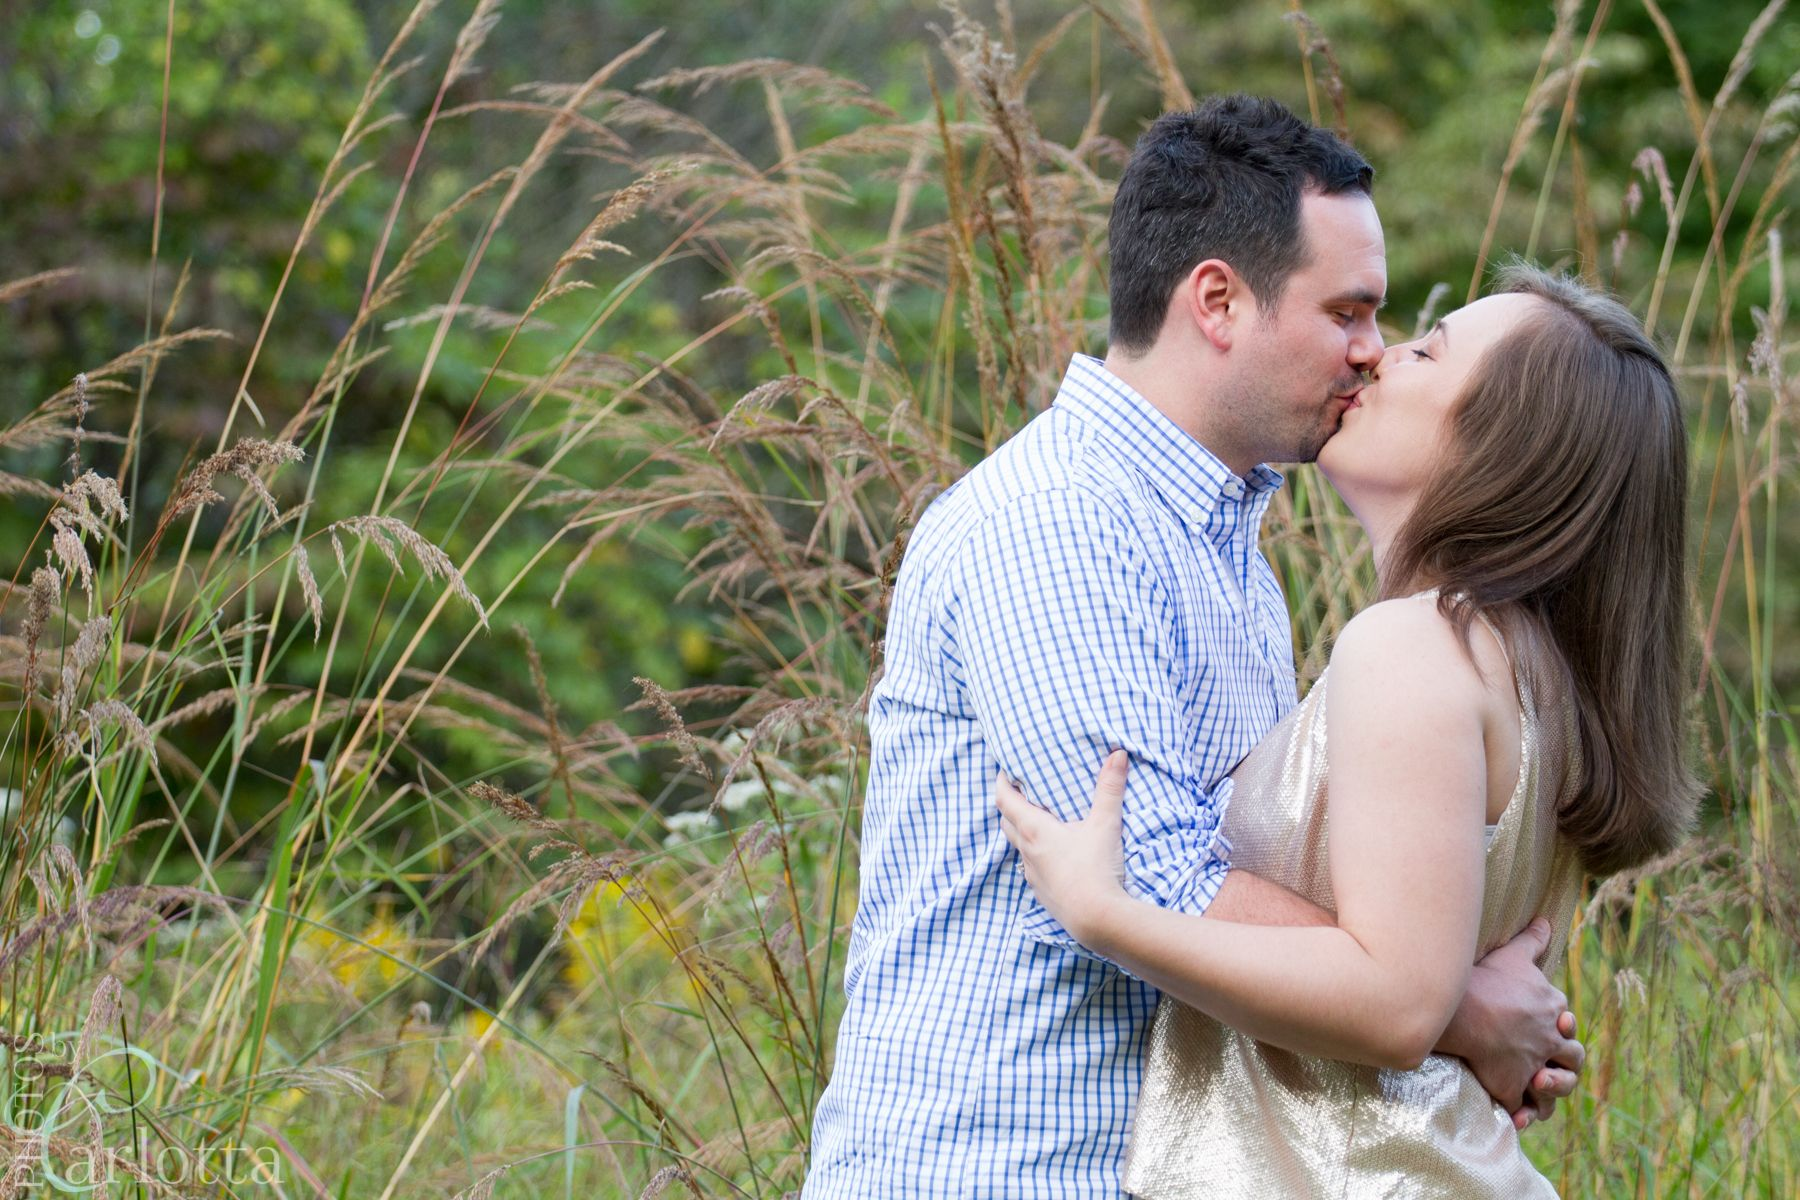 Oregon Ridge Park in Hunt Valley Maryland Engagement Shoot by Photos by Carlotta